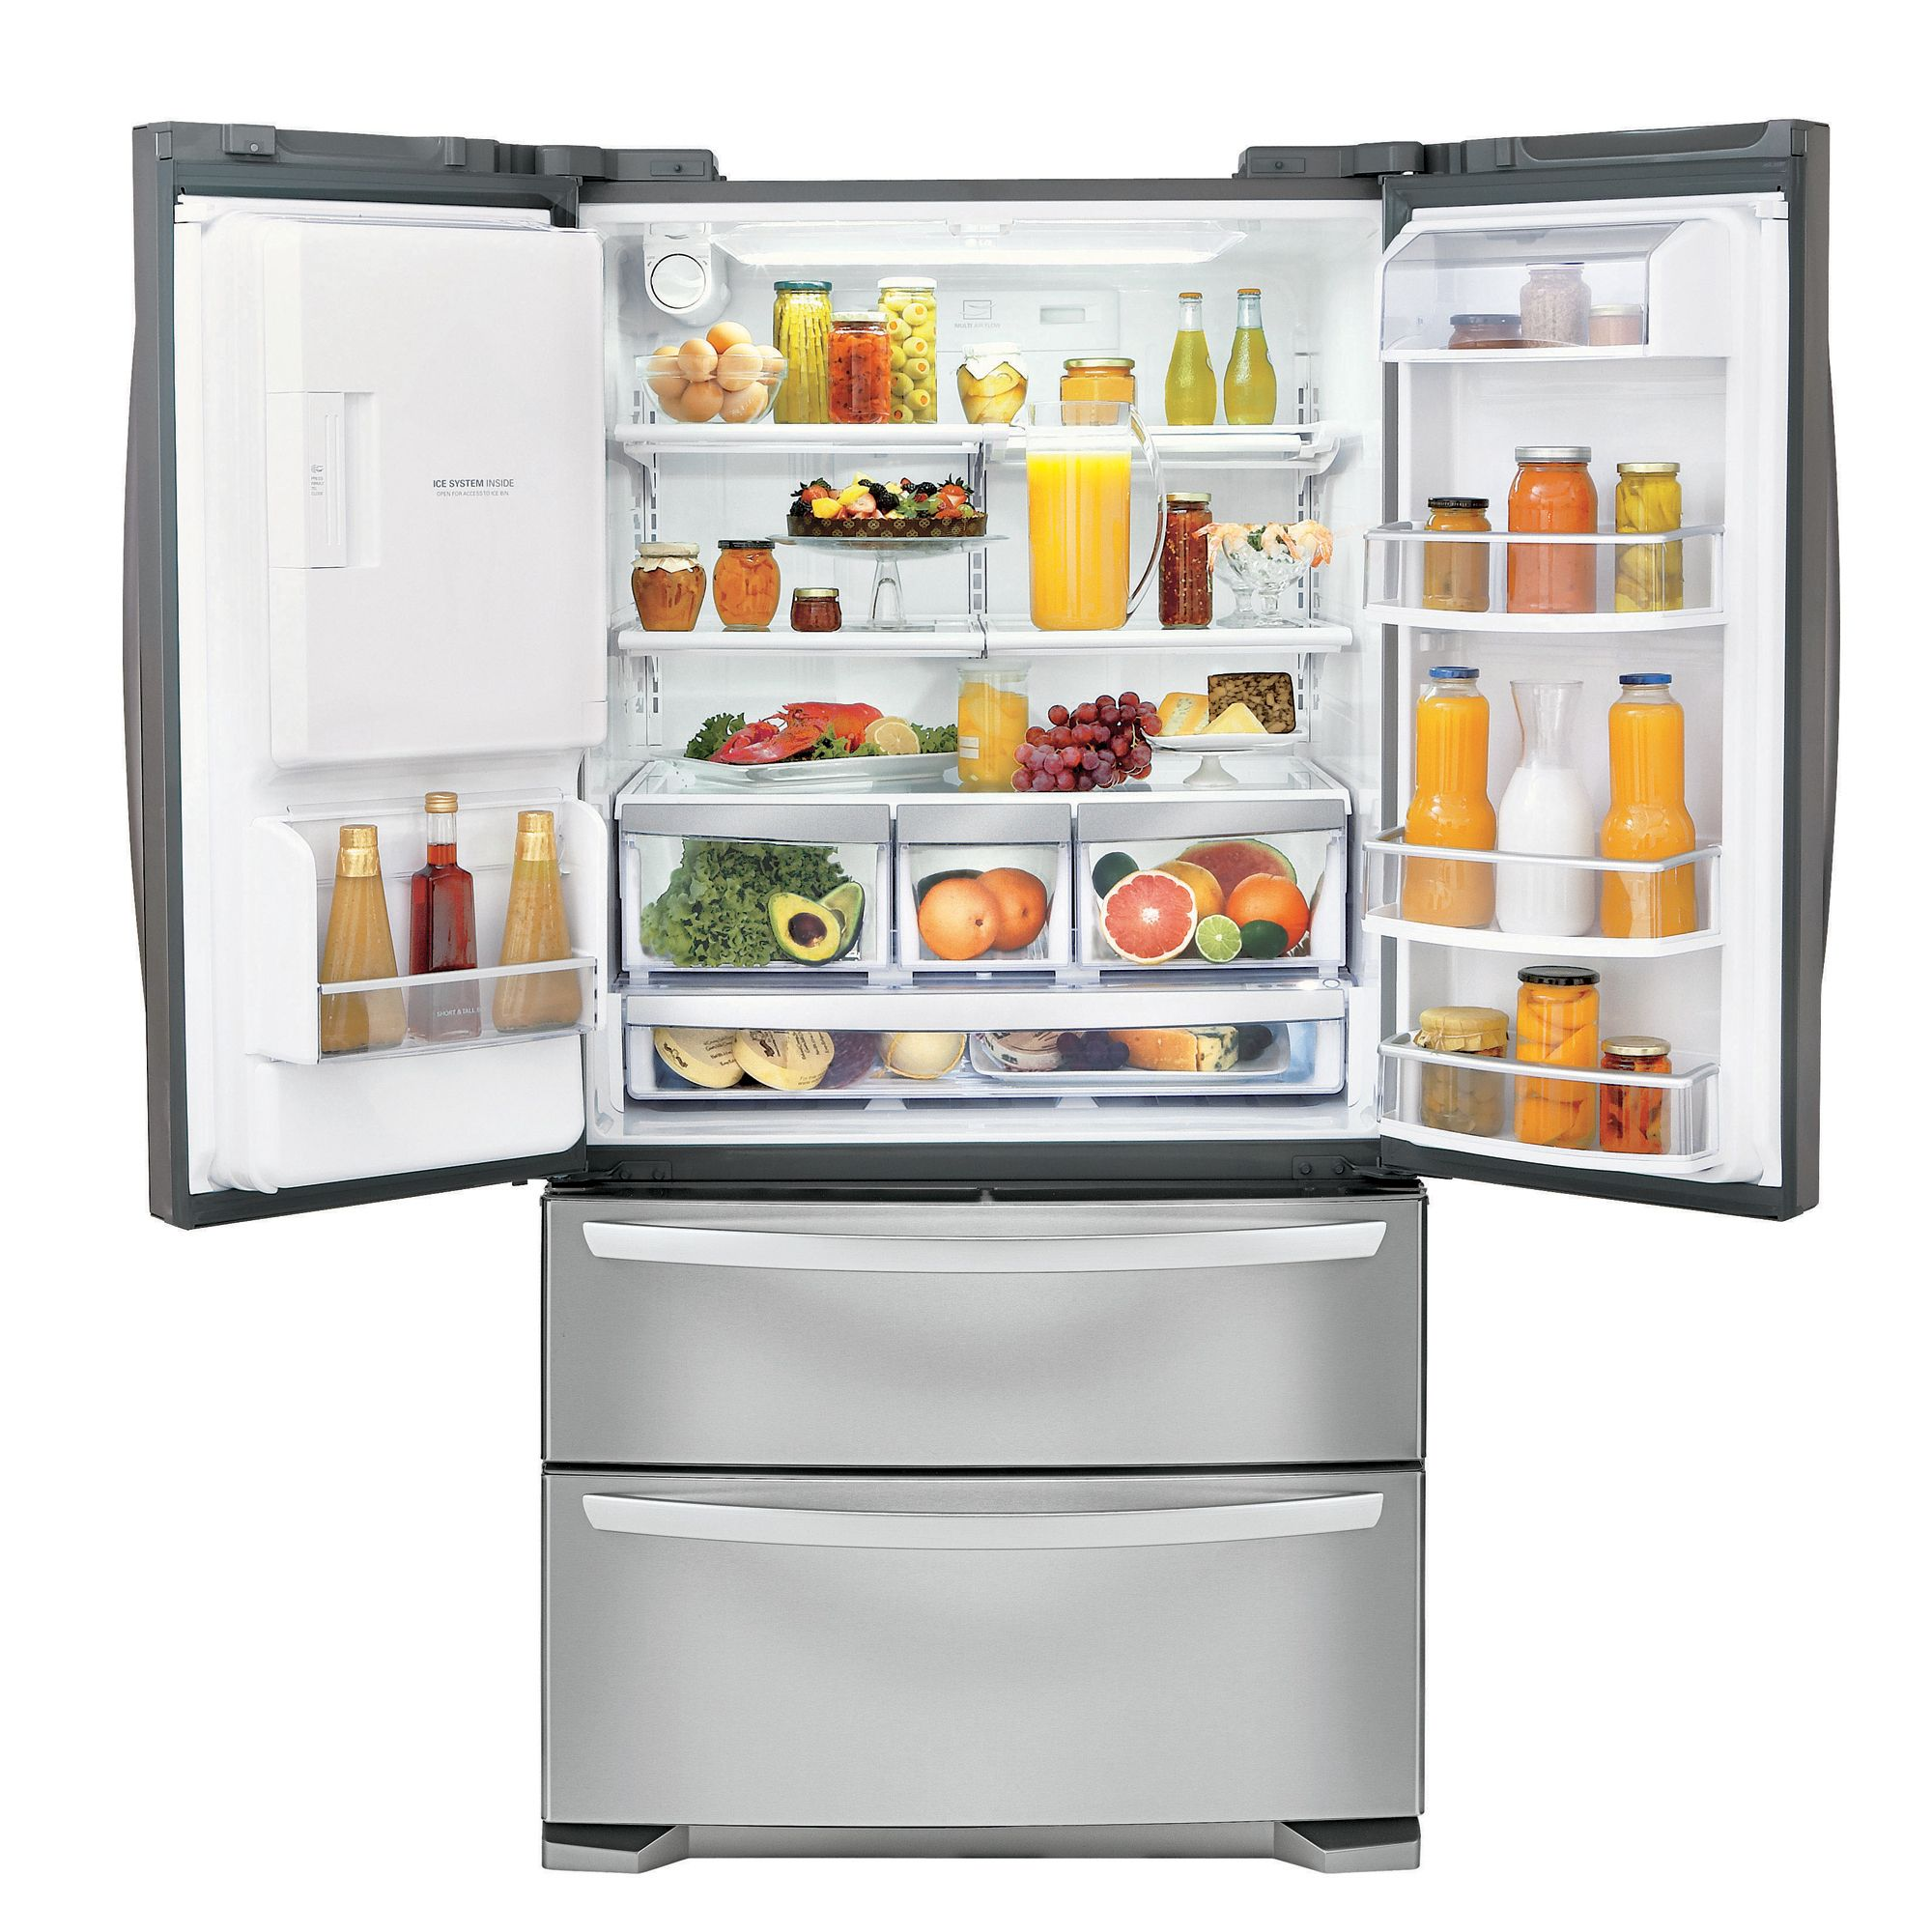 LG 27.5 cu. ft. Ultra Capacity 4-Door French-Door Refrigerator